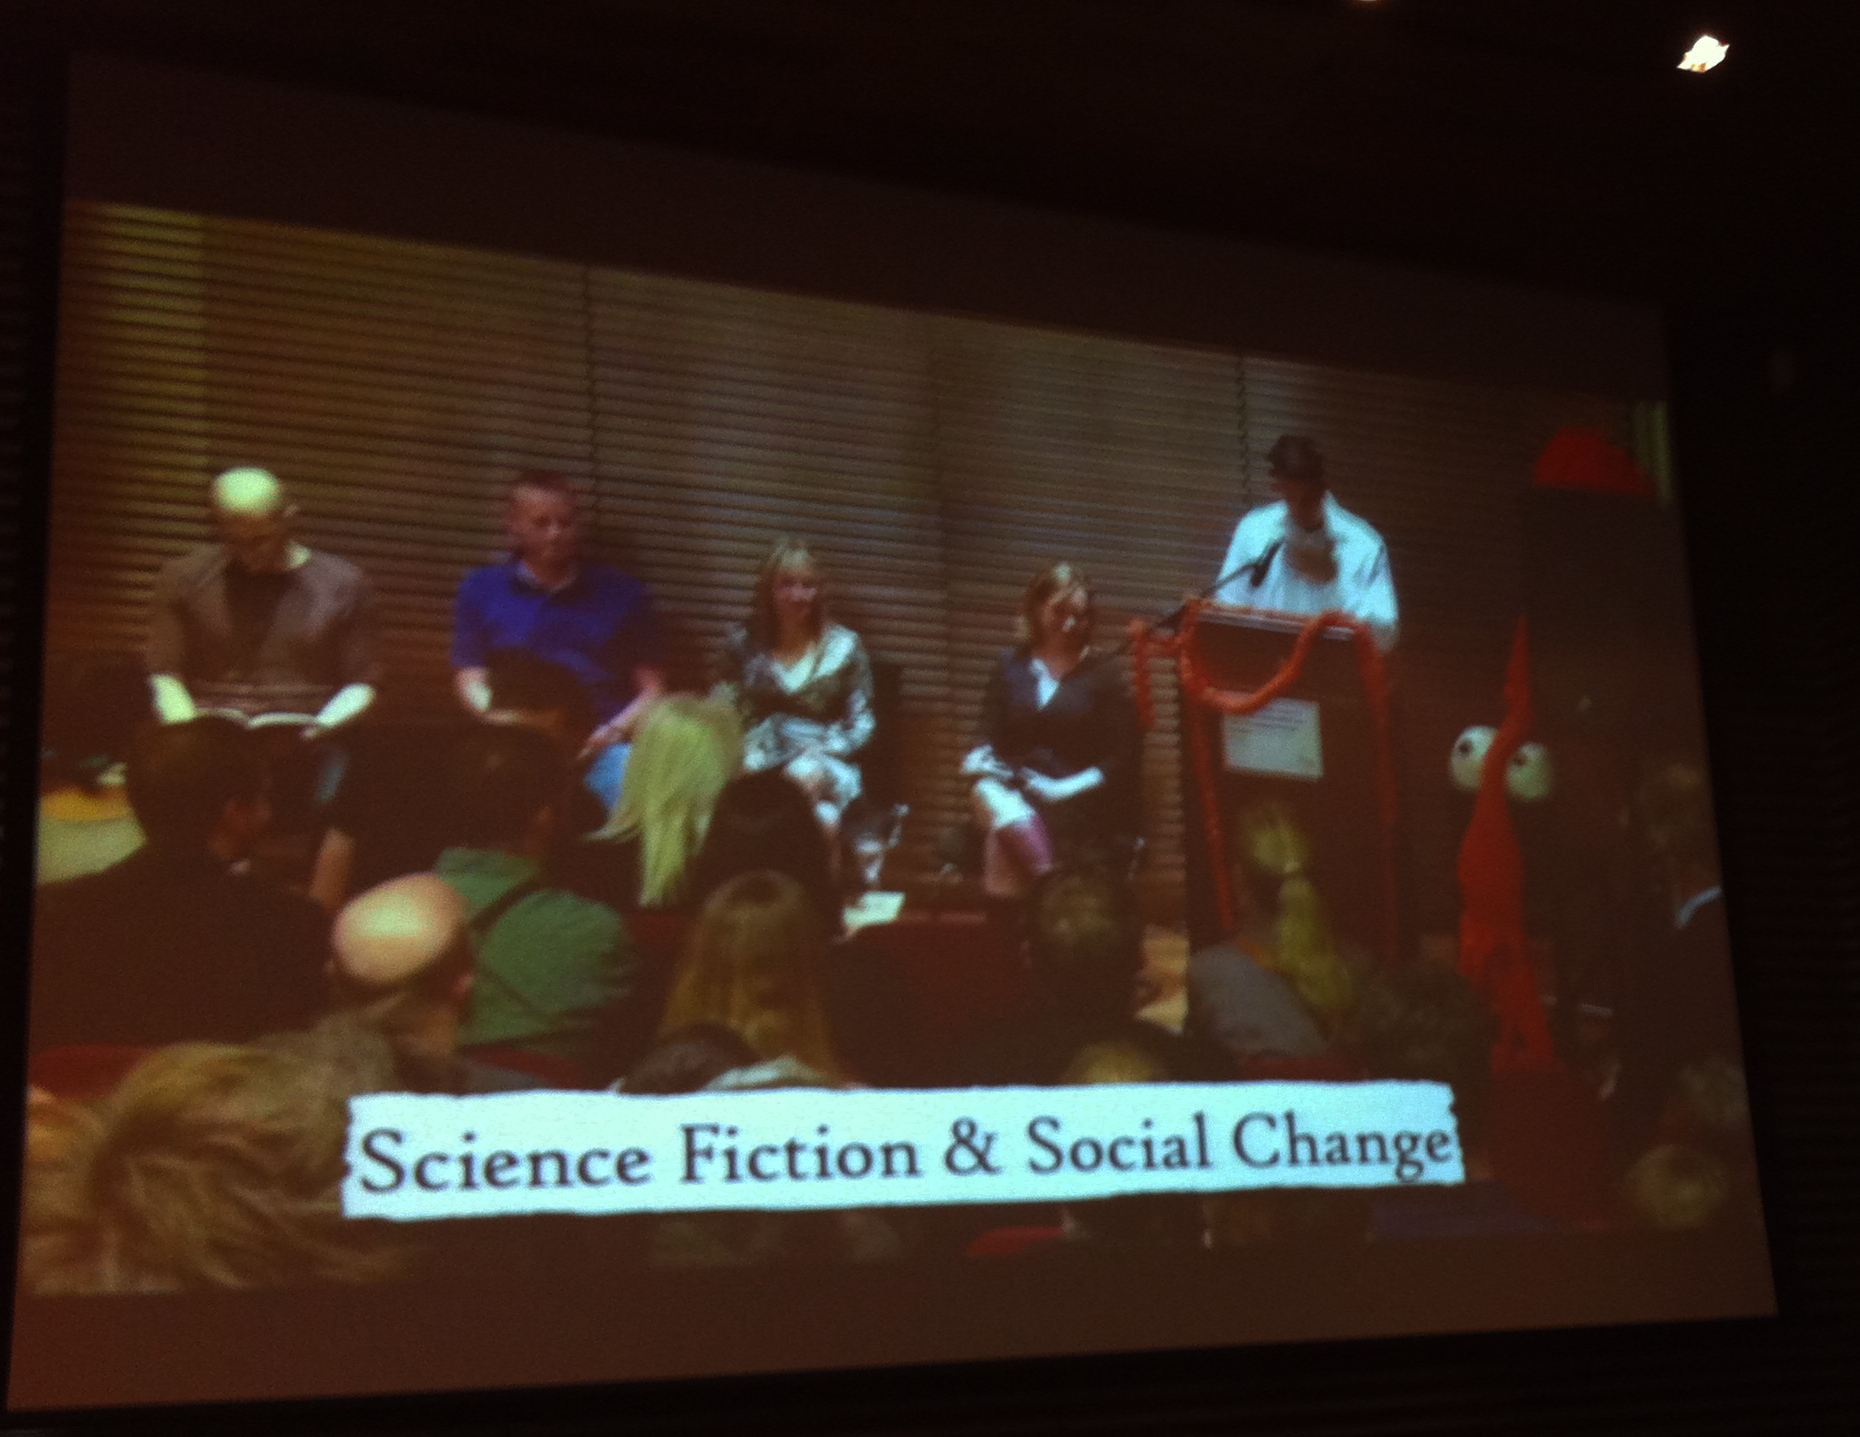 Kitchies' SF and Social Change event: China Miéville, Patrick Ness, Lauren Beaukes, Anne Perry